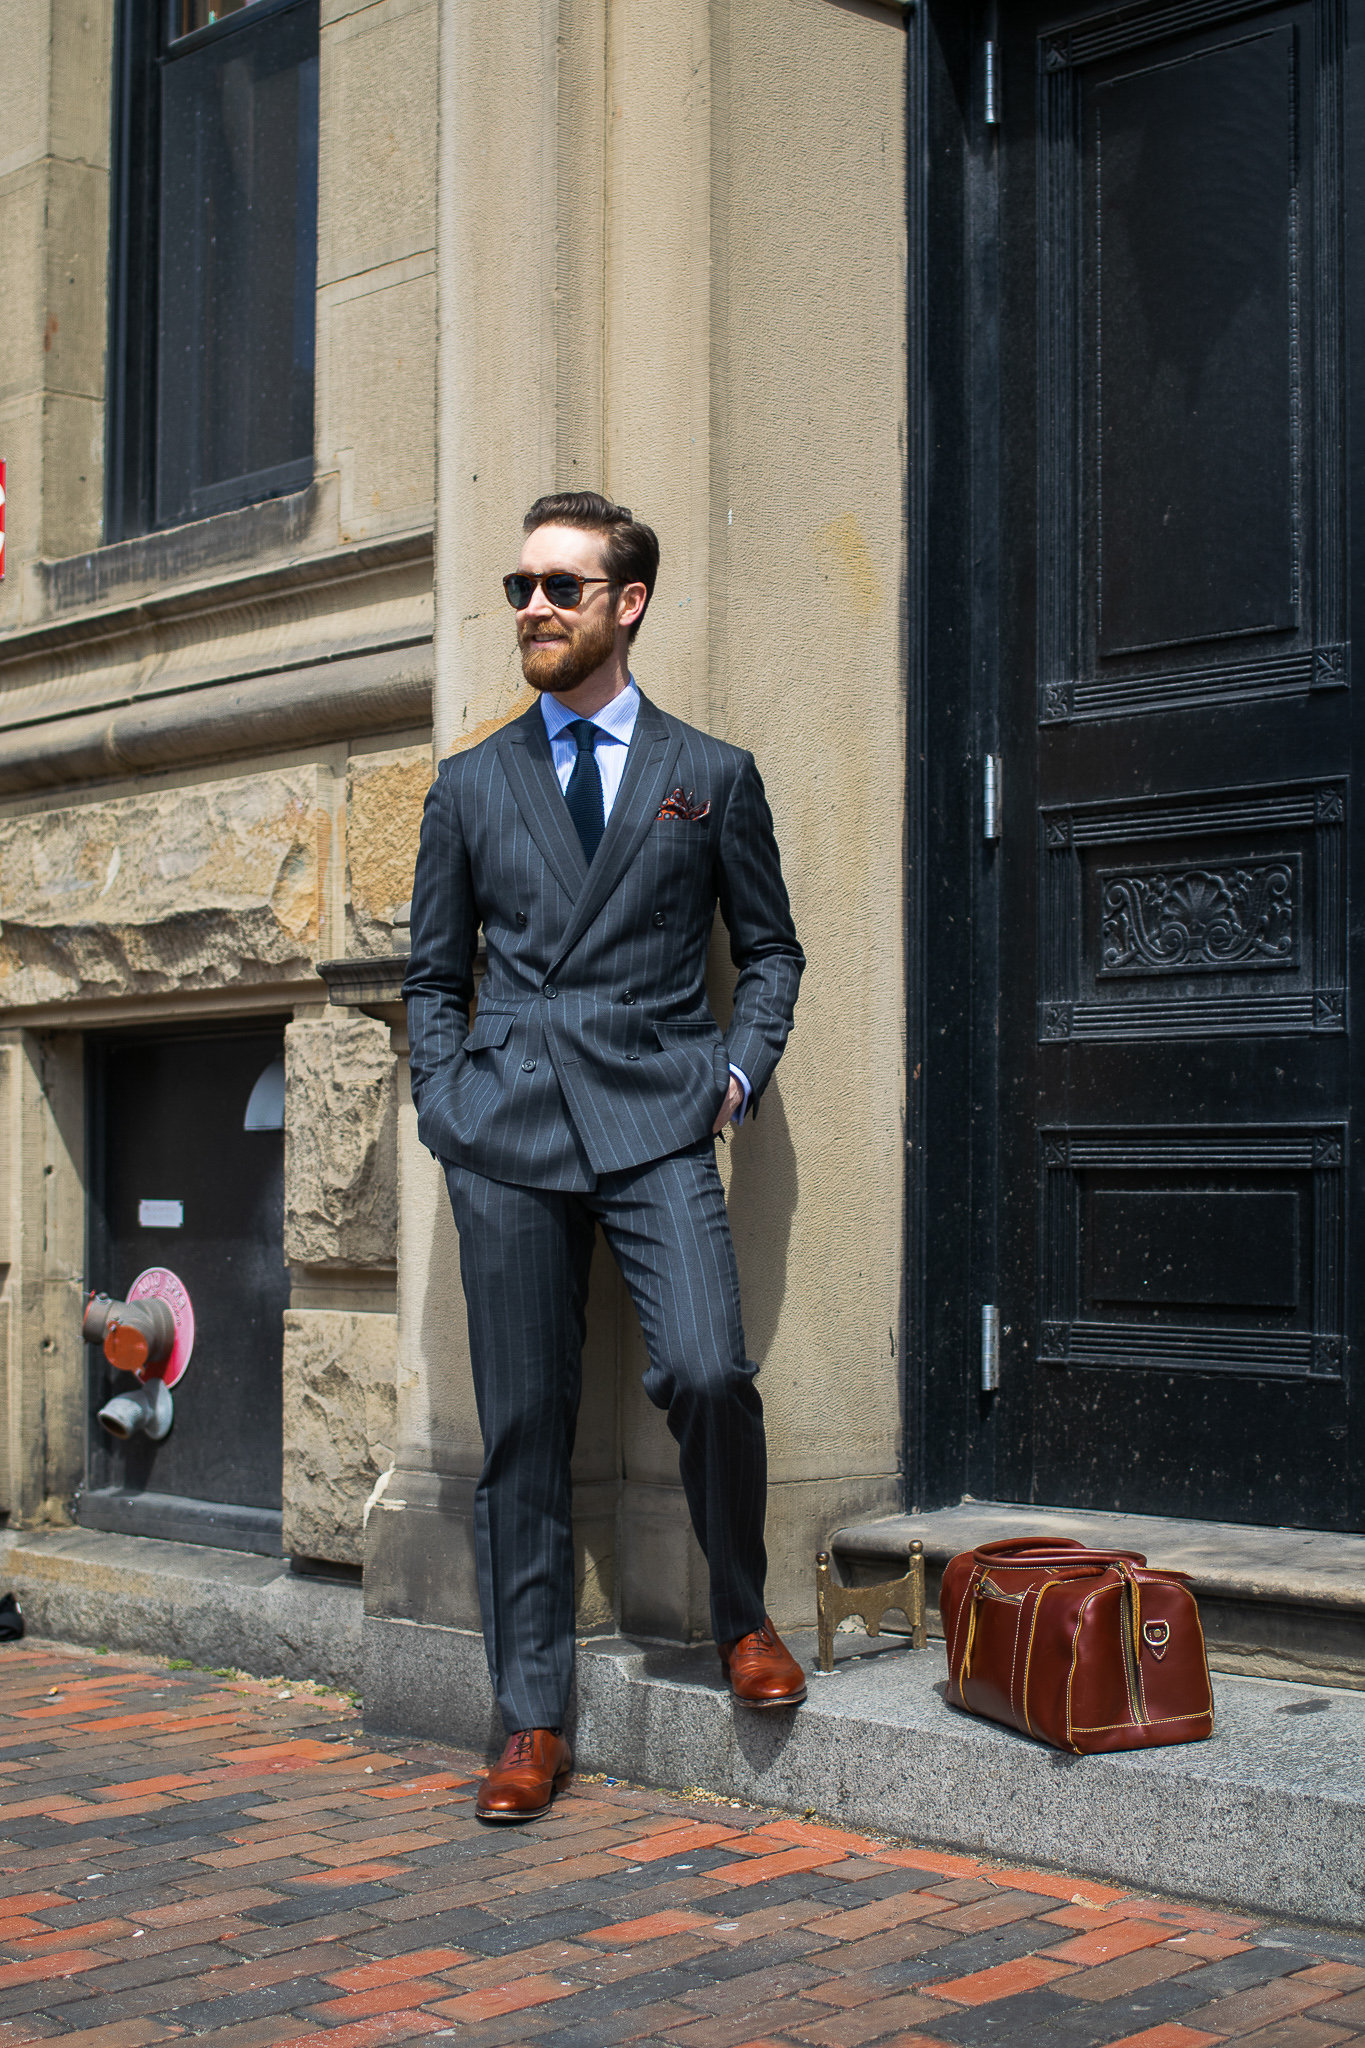 The Pinstripe Double-Breasted Suit  Suit by Brooks Brothers / Shoes by Brooks Brothers / Tie by Brooks Brothers / Shirt by Brooks Brothers / Pocket square by Brooks Brothers / Bag by Brooks Brothers / Sunglasses by Brooks Brothers